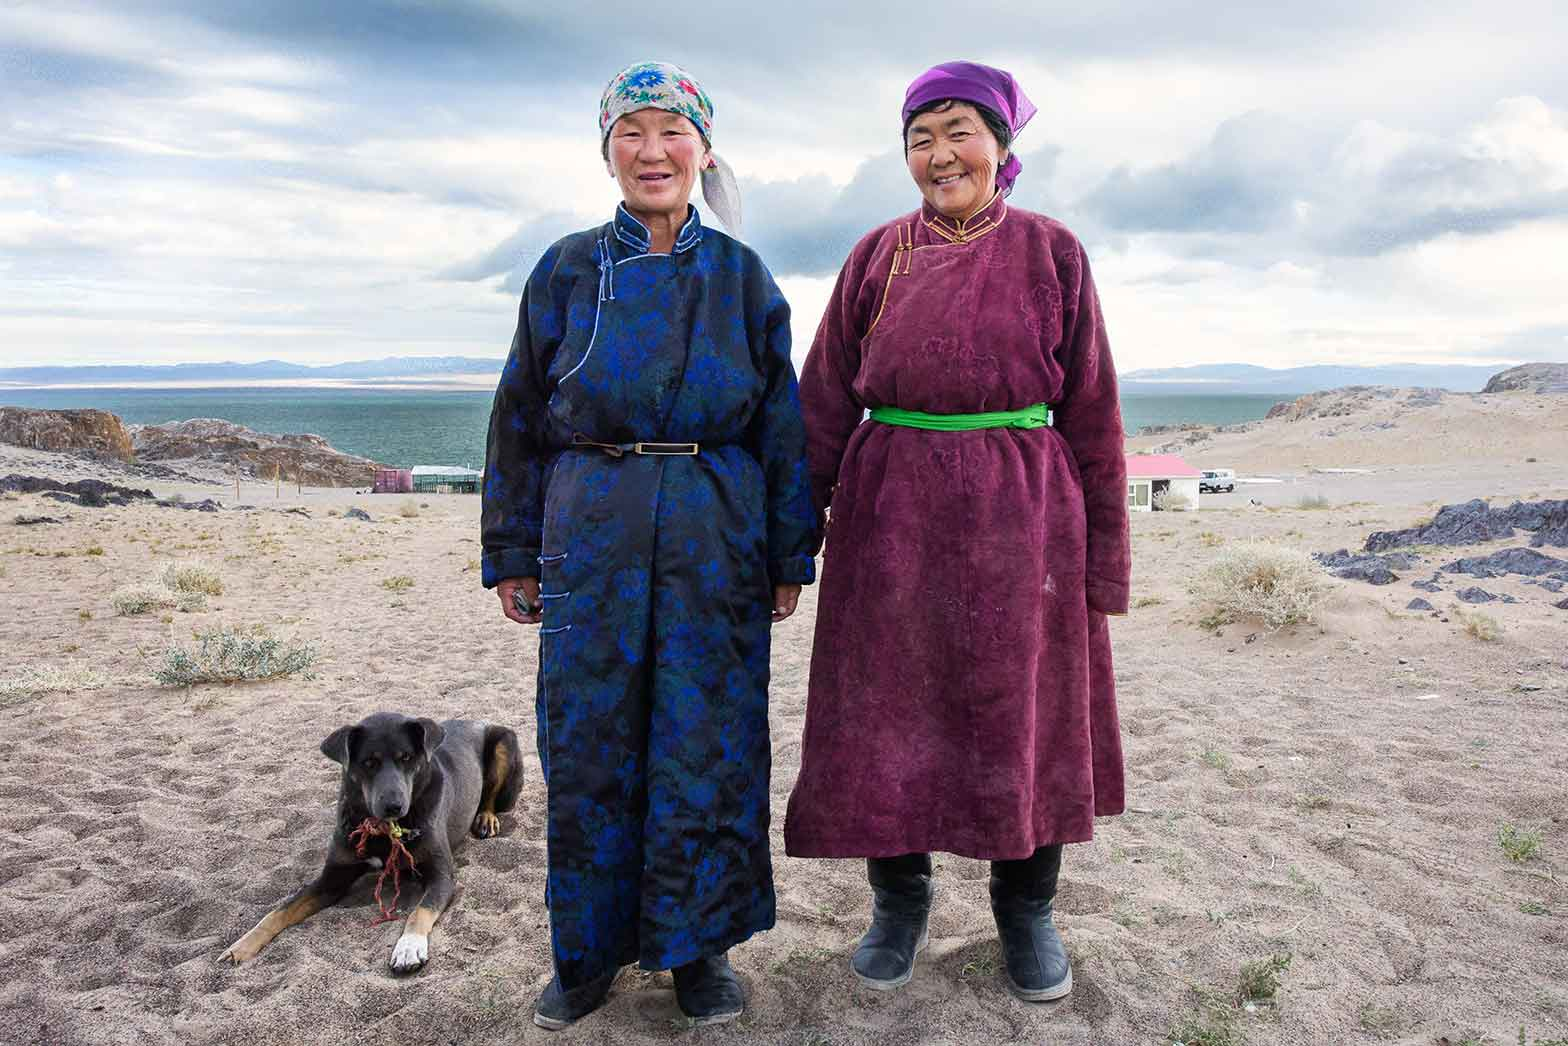 A surprise visit during breakfast in Mongolia